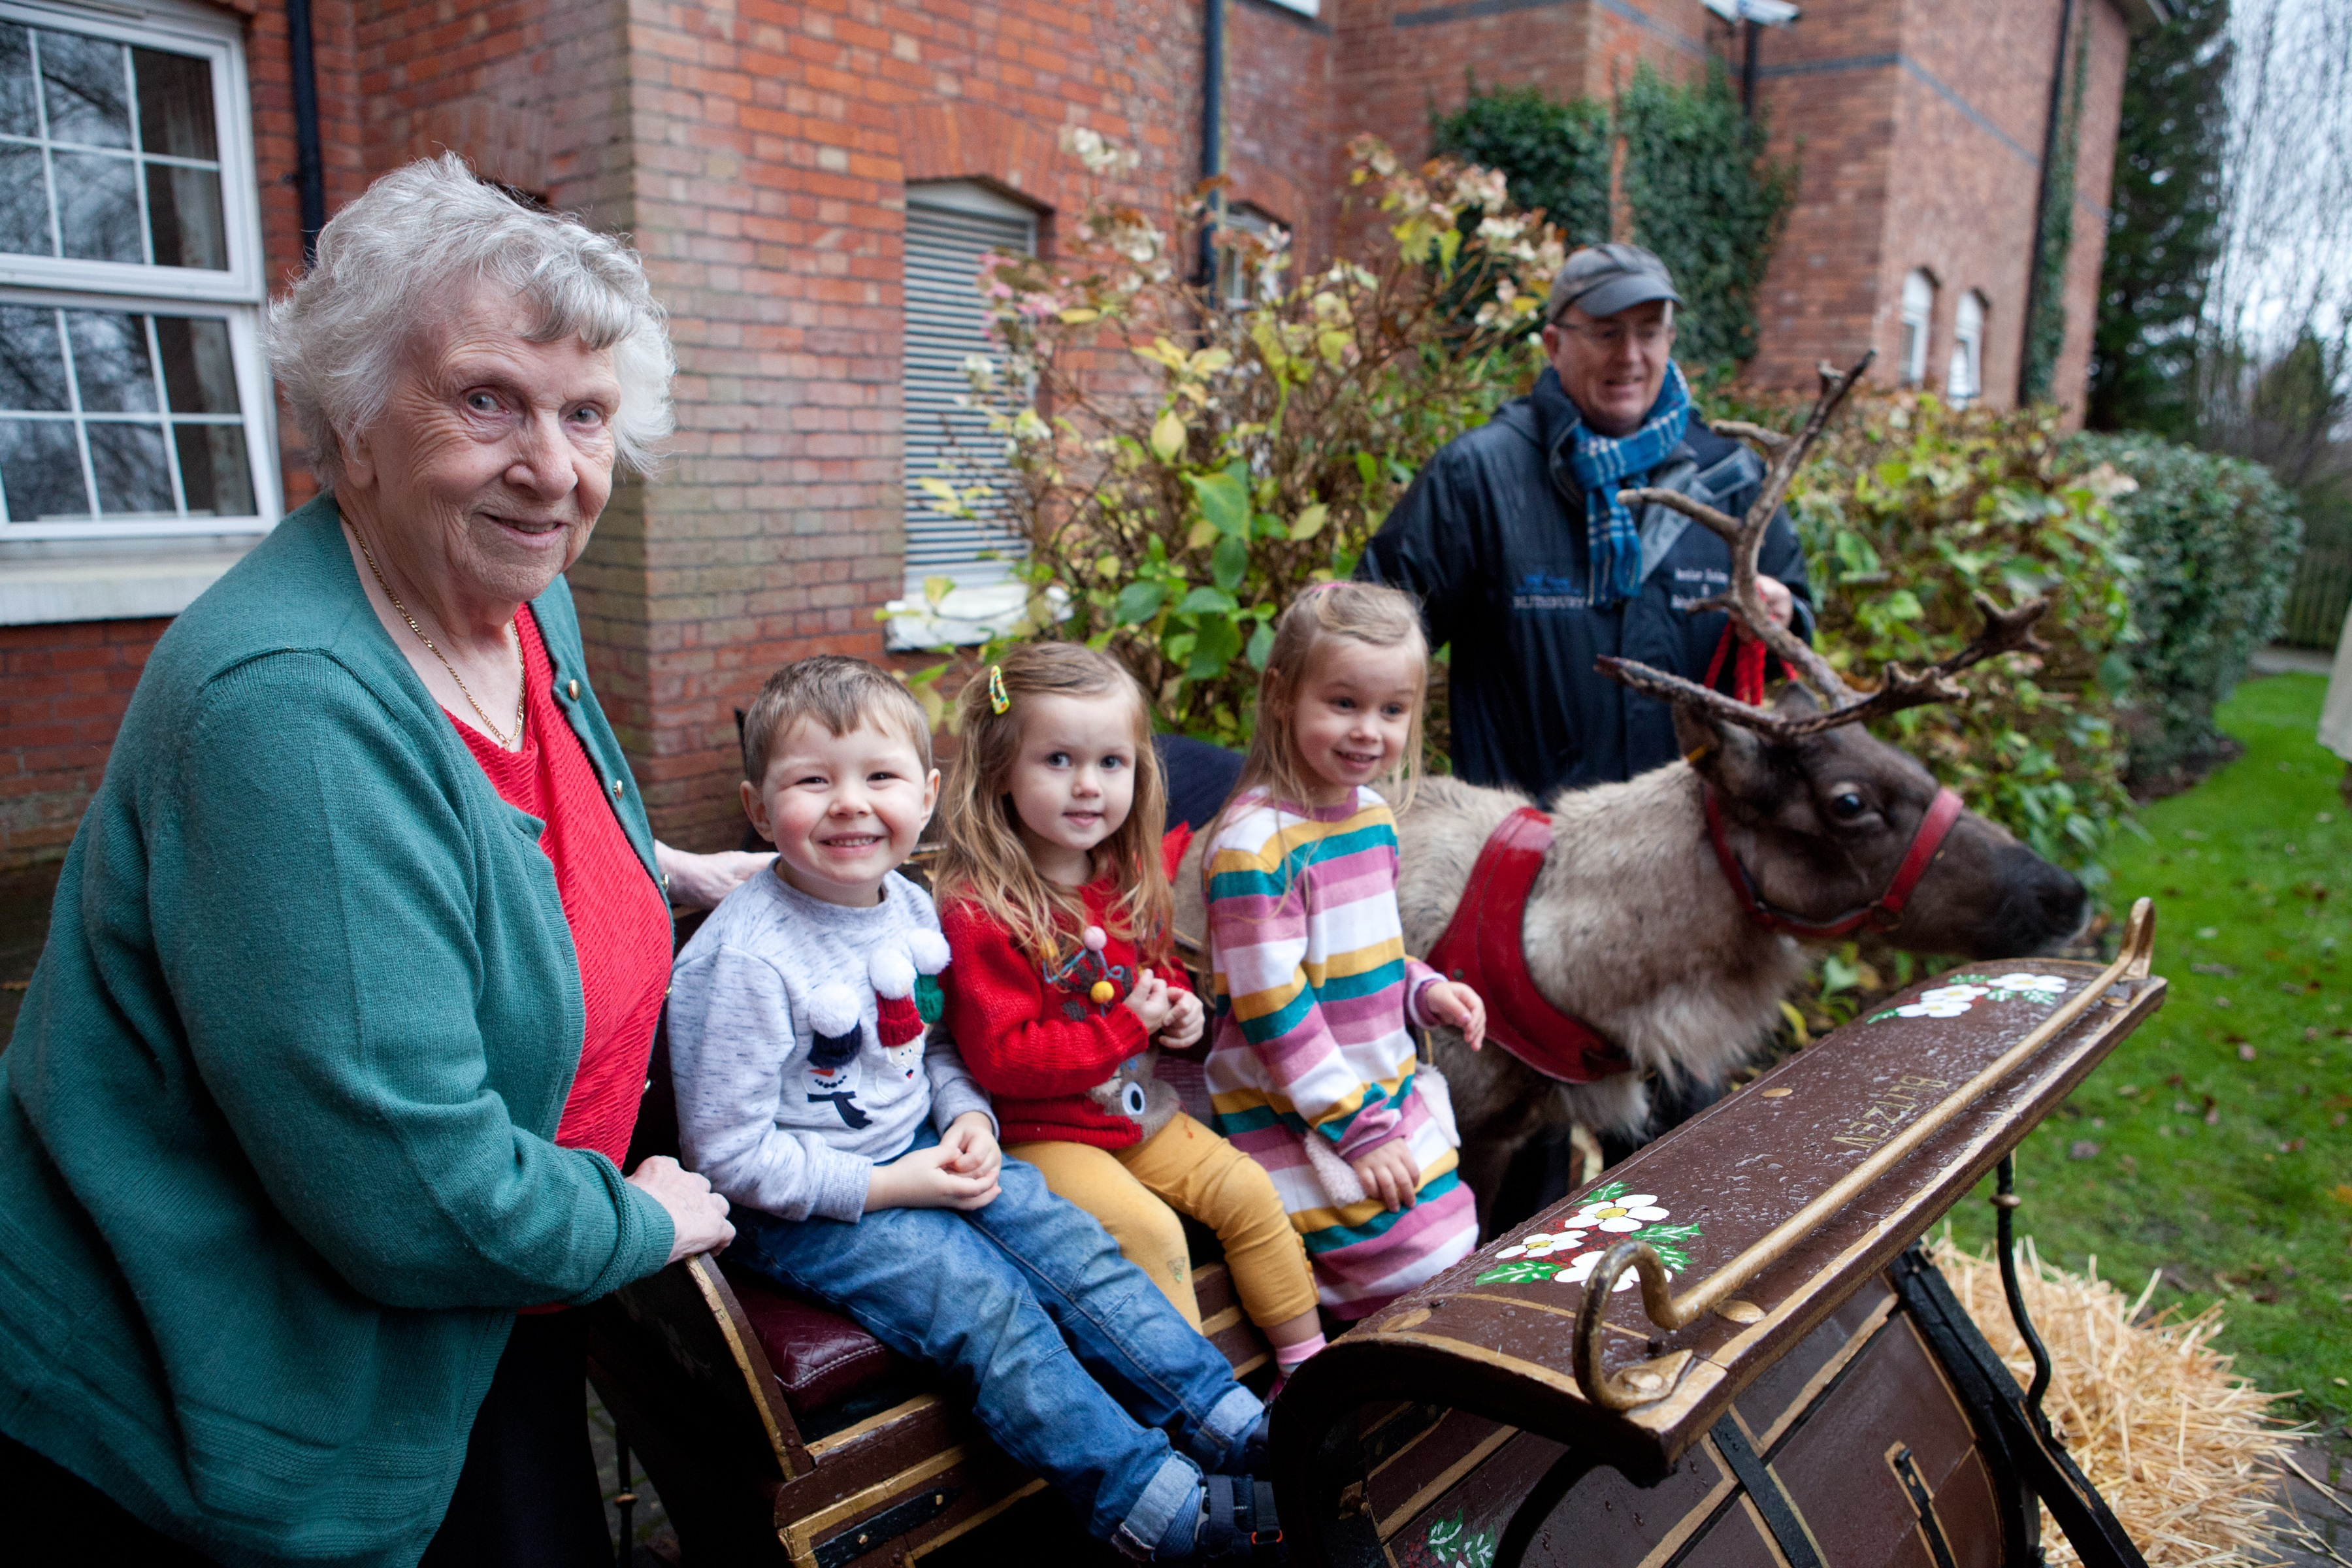 Reindeer visit and youngsters create Christmas magic at Nursing Home